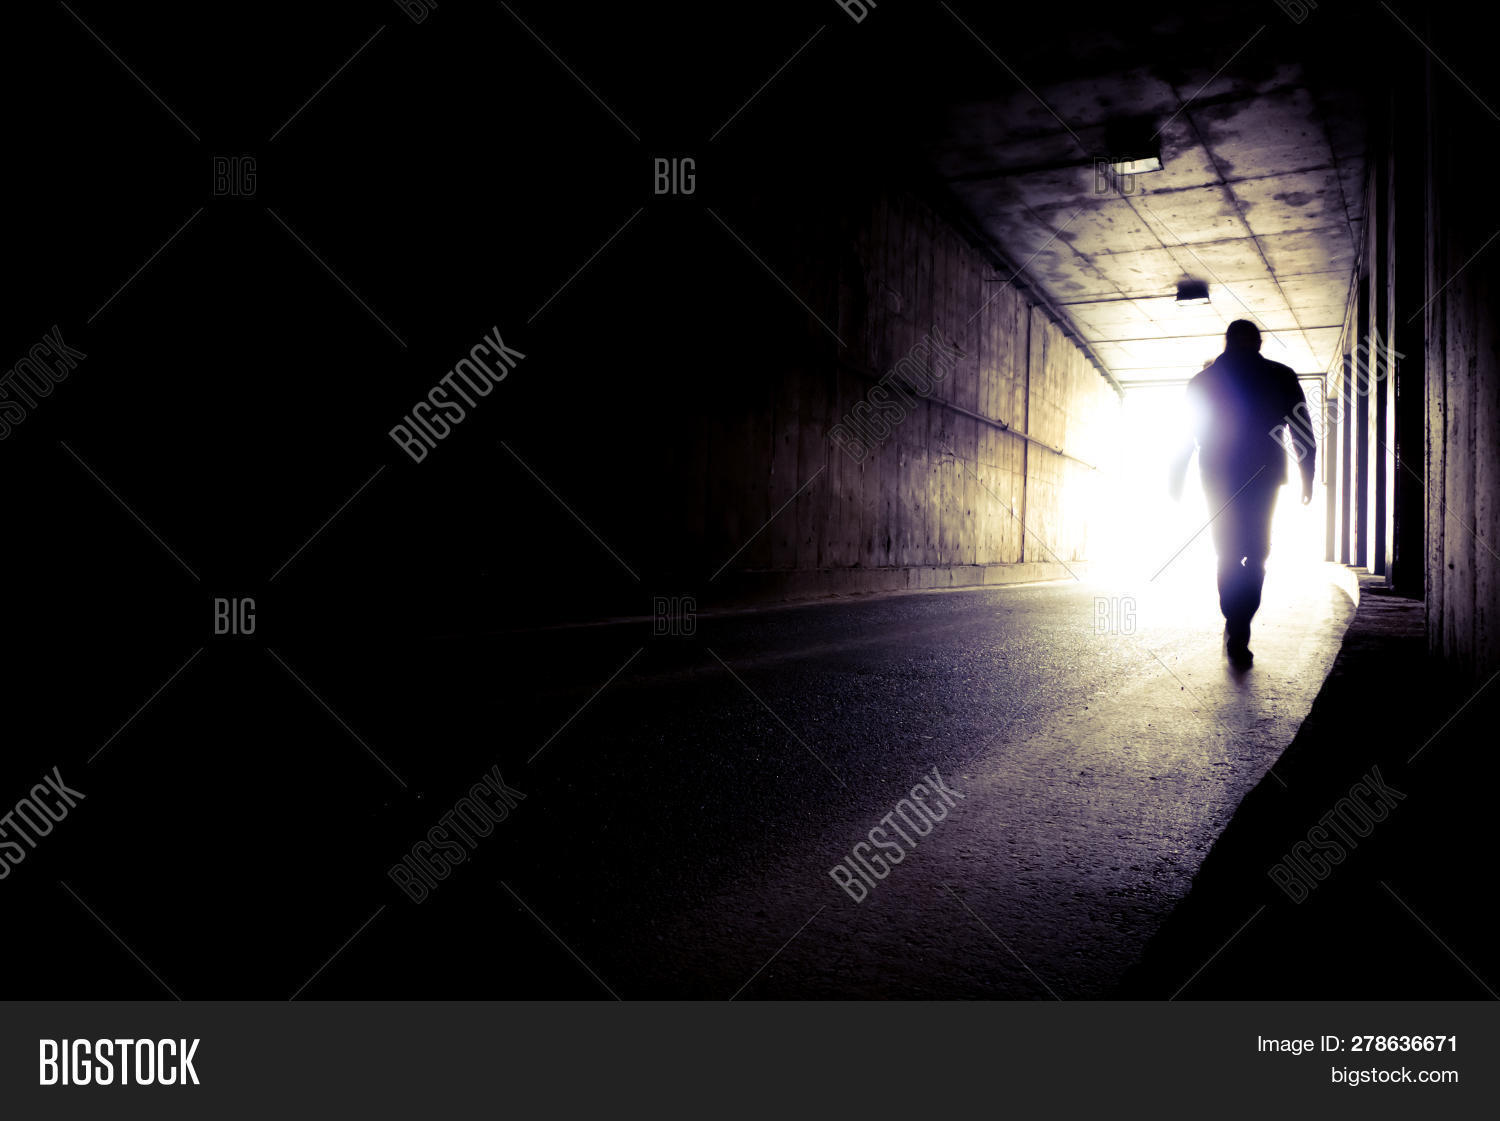 abstract,alone,art,black,bright,concept,corridor,dark,death,dying,end,exit,experience,faith,future,goal,graffiti,heading,heaven,hope,human,leaving,life,light,loneliness,lonely,loss,male,man,movement,moving,near,next,pass,people,person,plan,road,shadow,silhouette,steps,street,towards,tunnel,underground,urban,walk,wall,way,white